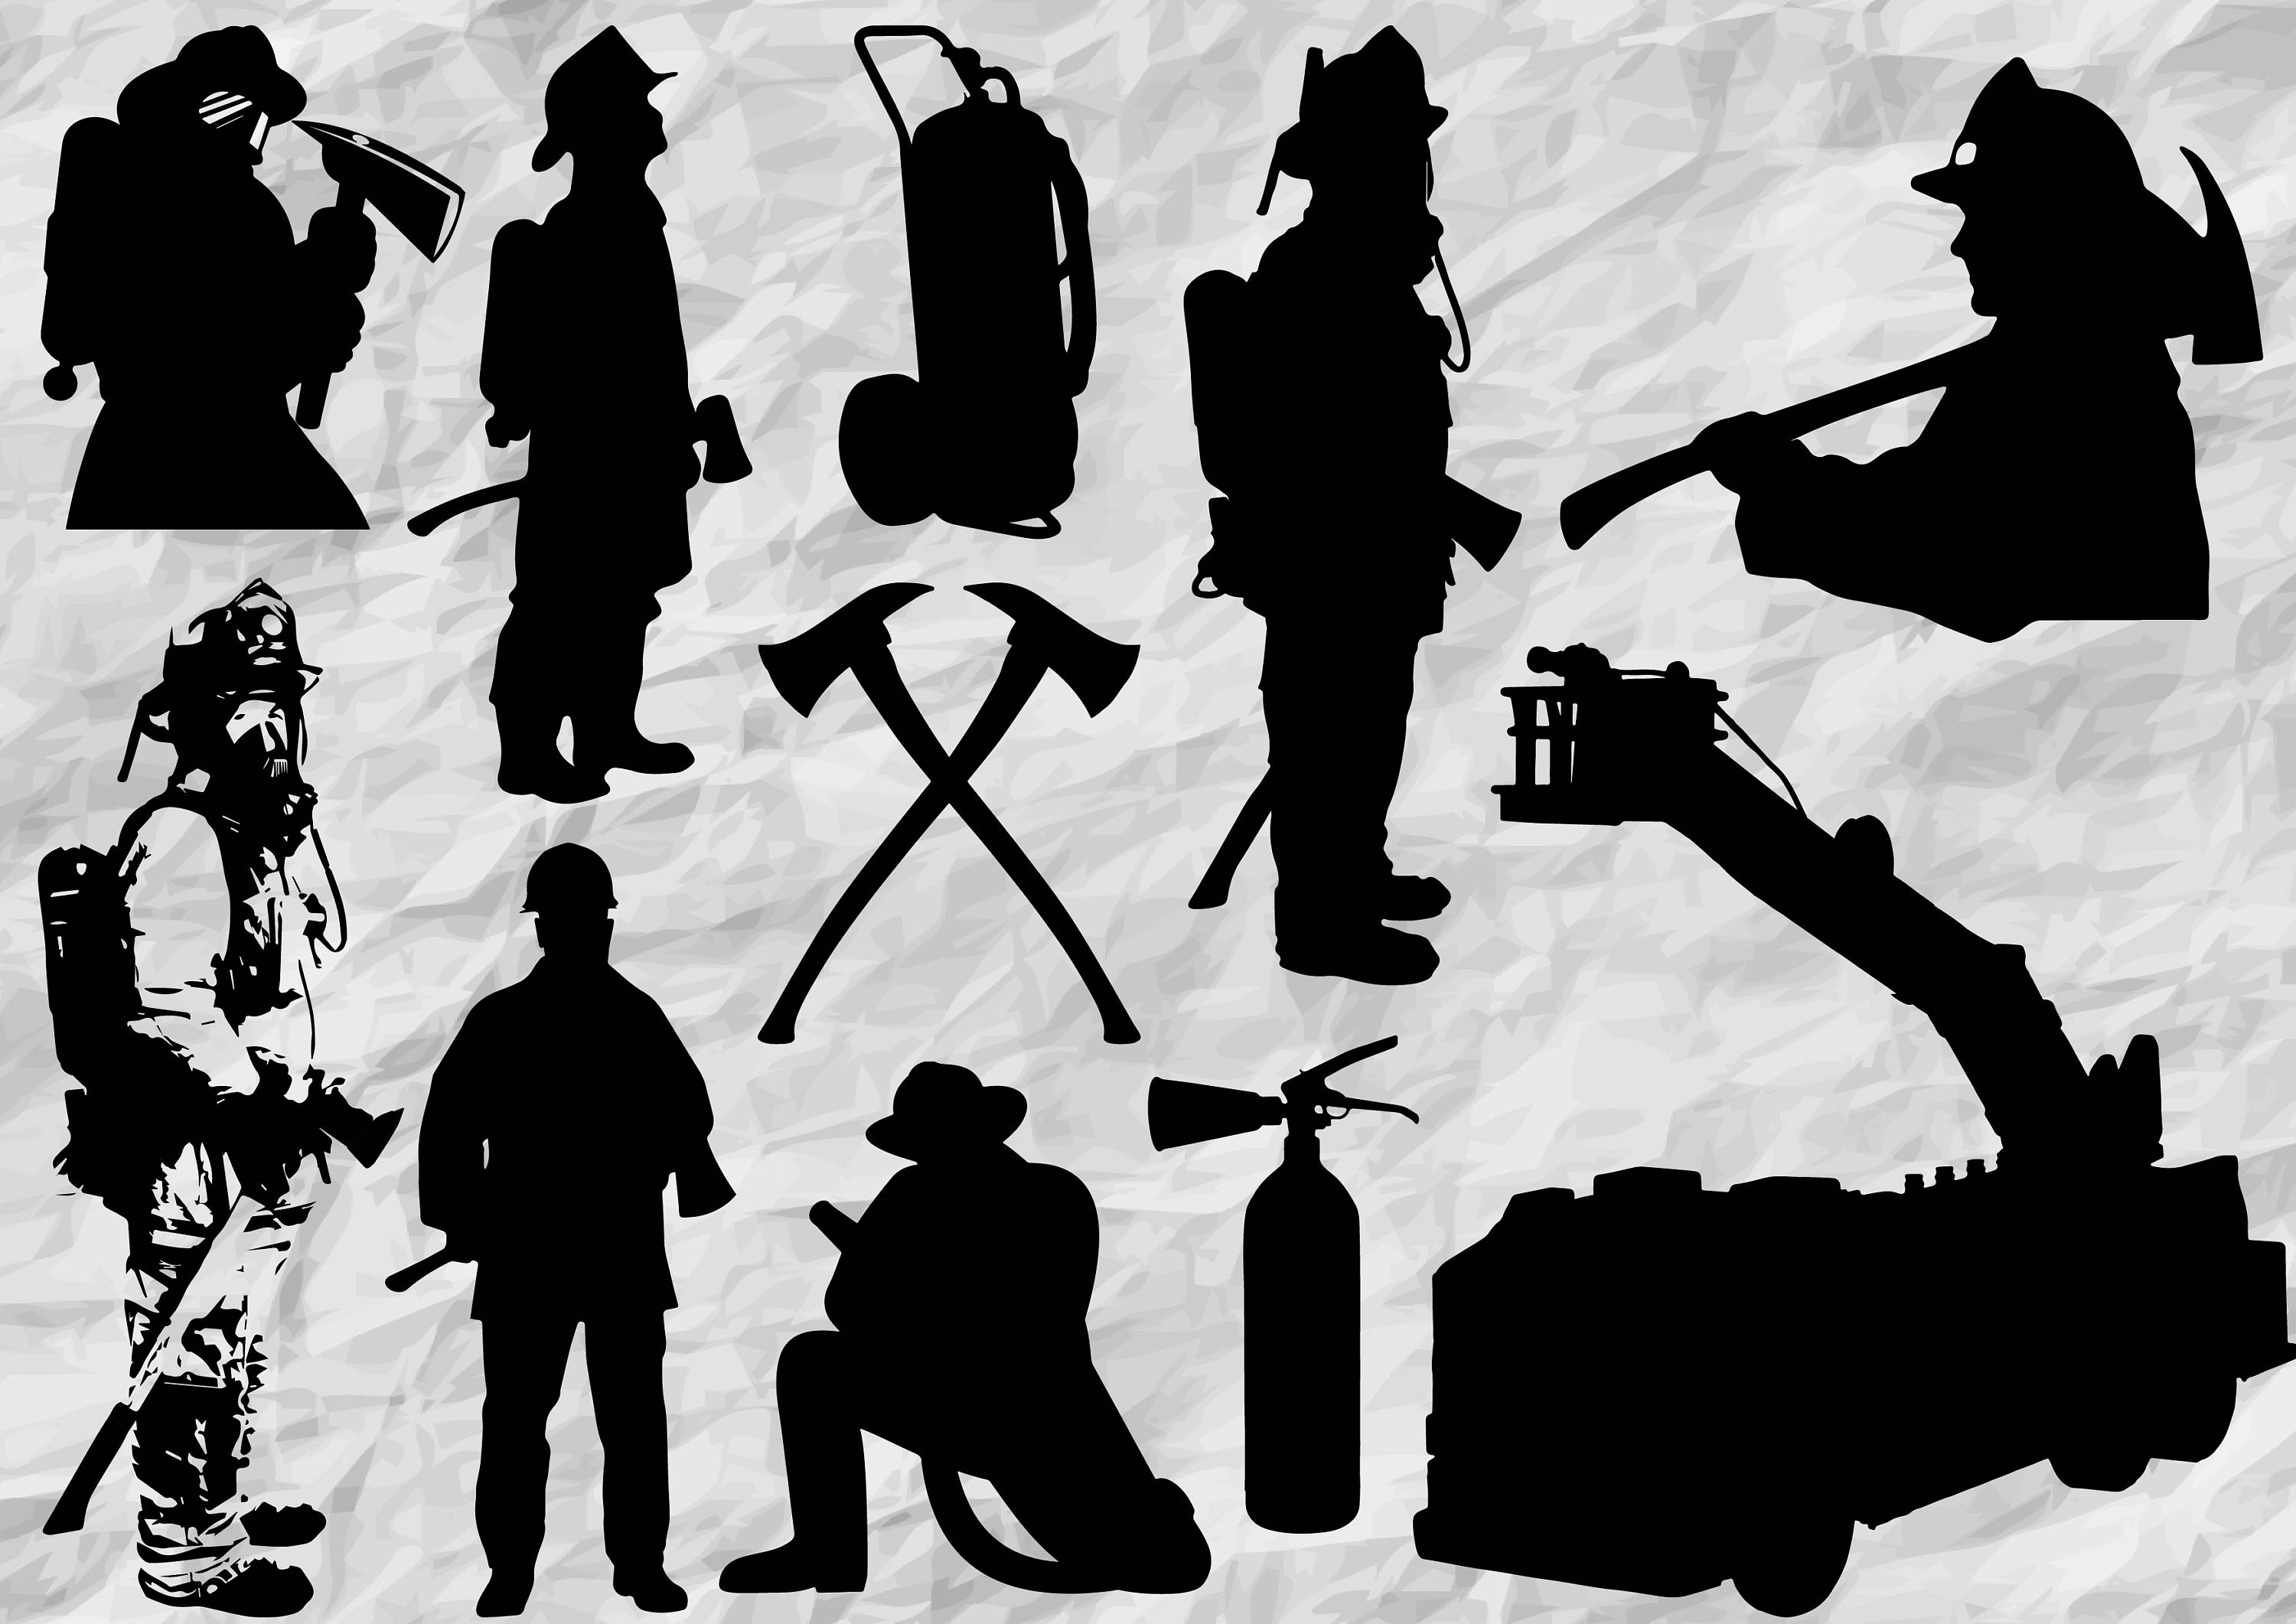 firefighter silhouette firefighter silhouette illustrations royalty free vector silhouette firefighter